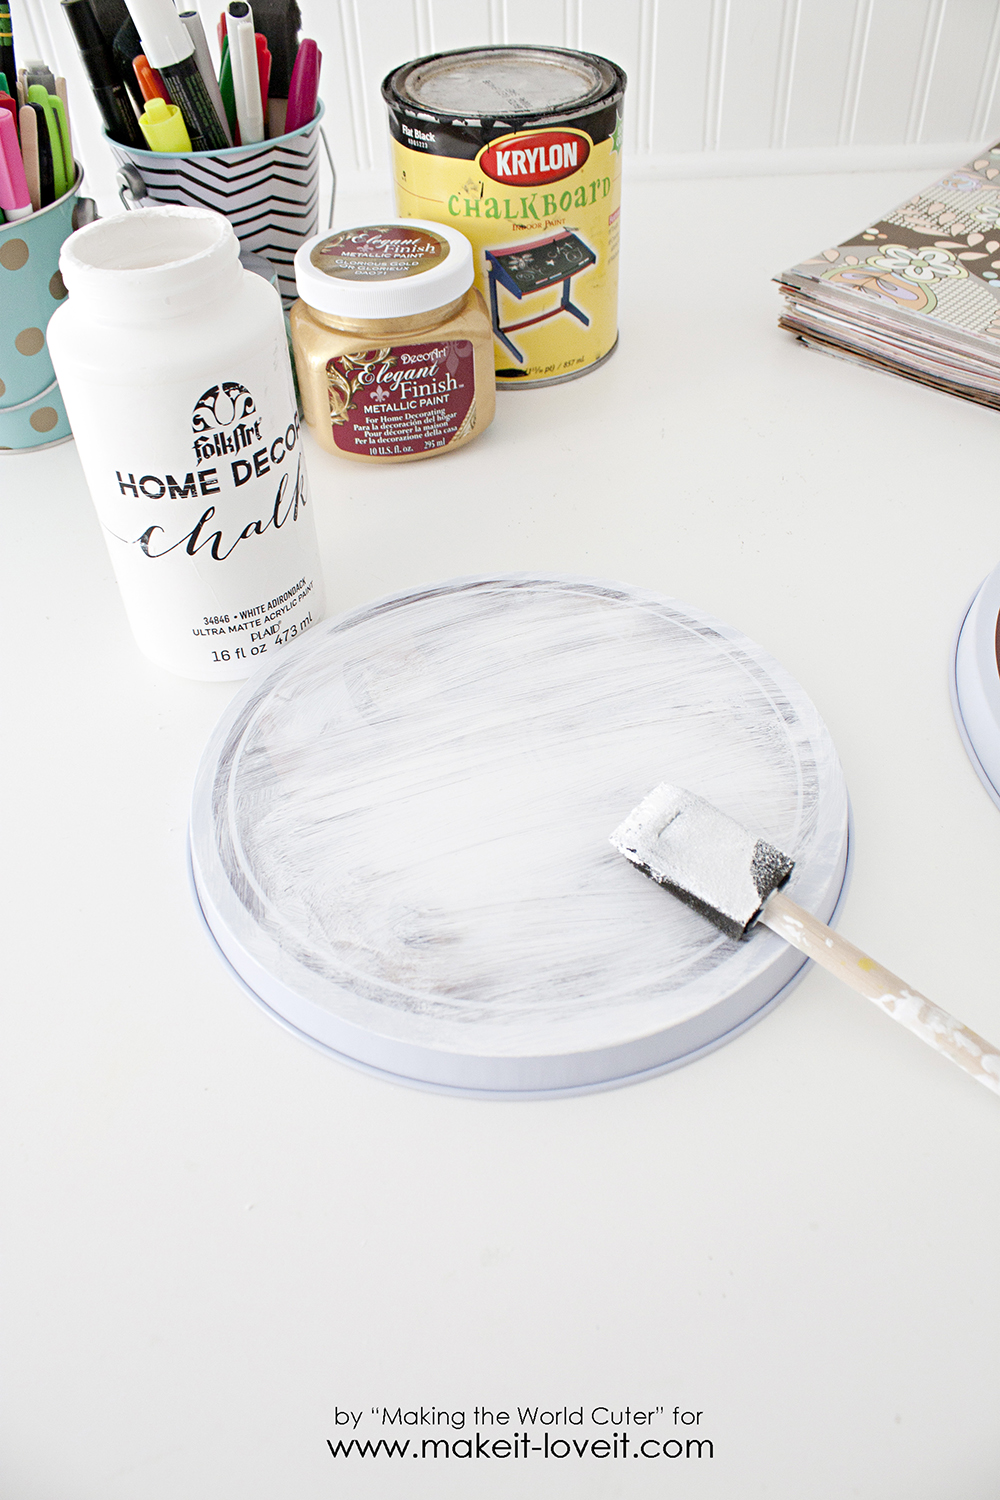 Ideal Dollar Store Burner Coversturned into Art! | Make It and Love It JQ67